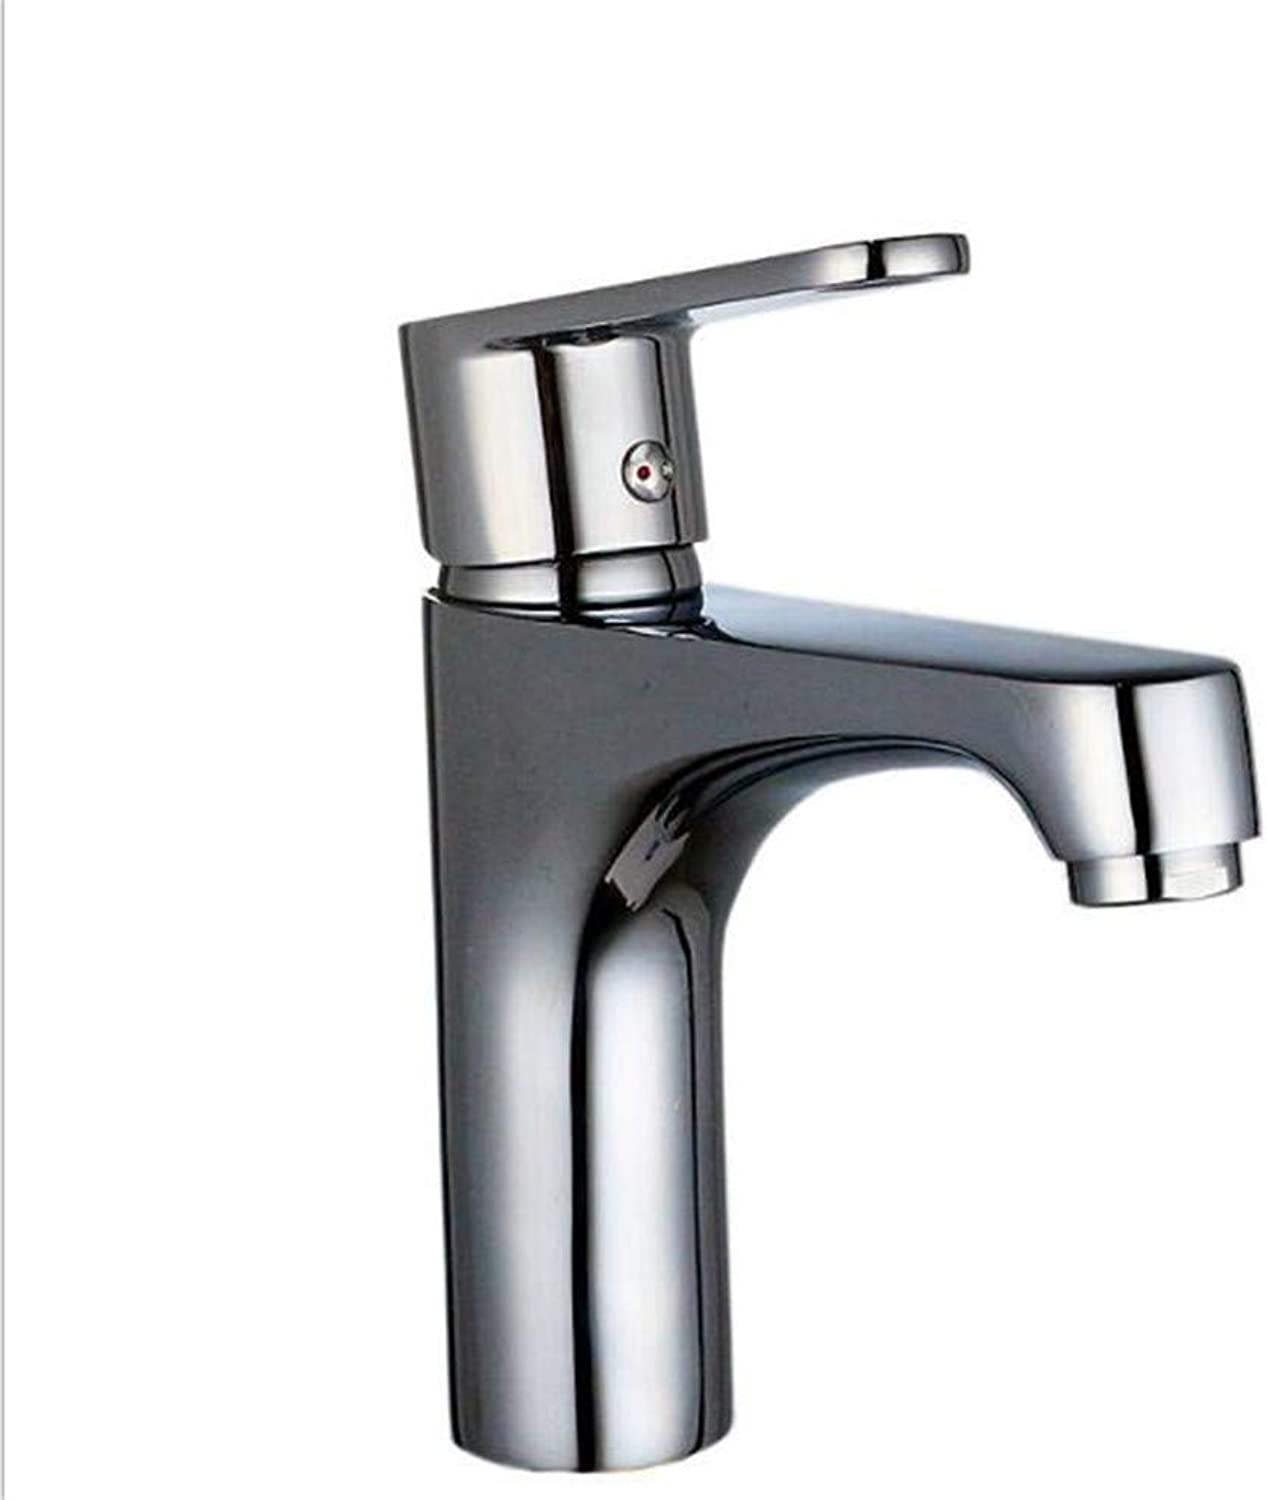 Bathroom Sink Basin Lever Mixer Tap Copper Hot and Cold Washbasin Faucet